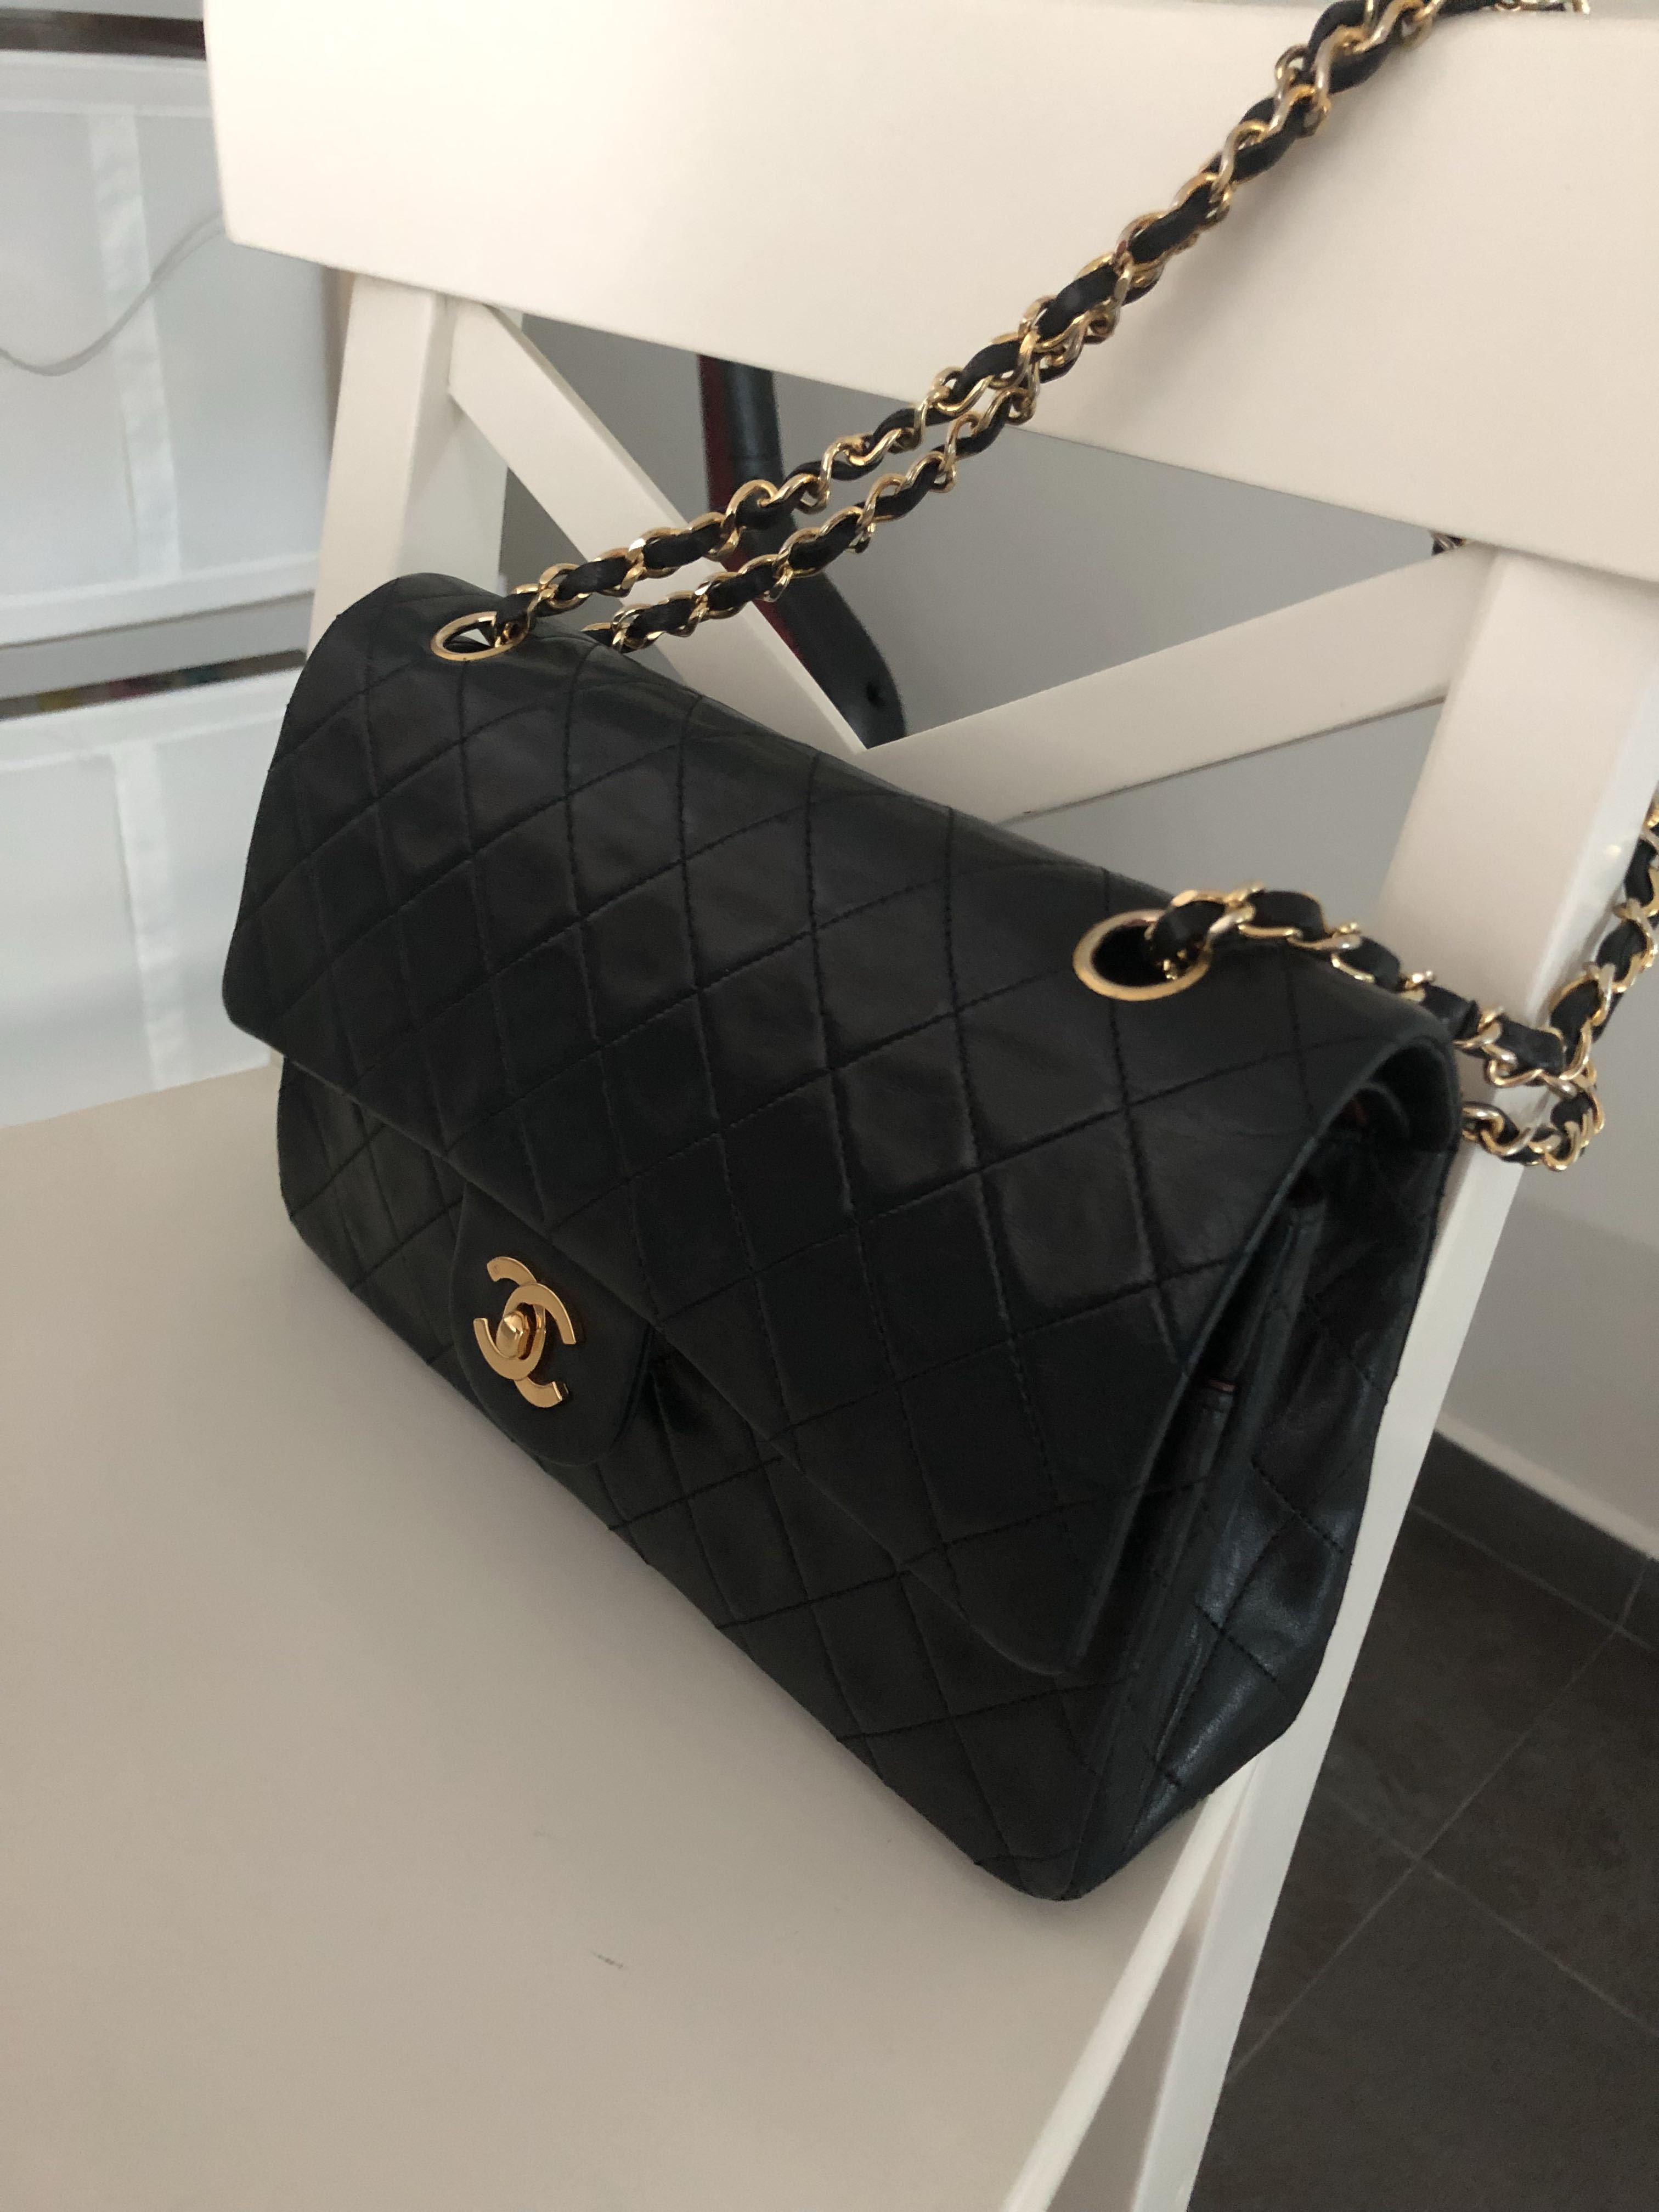 ab139c874a Authentic vintage Chanel 10inch, Luxury, Bags & Wallets, Handbags on  Carousell